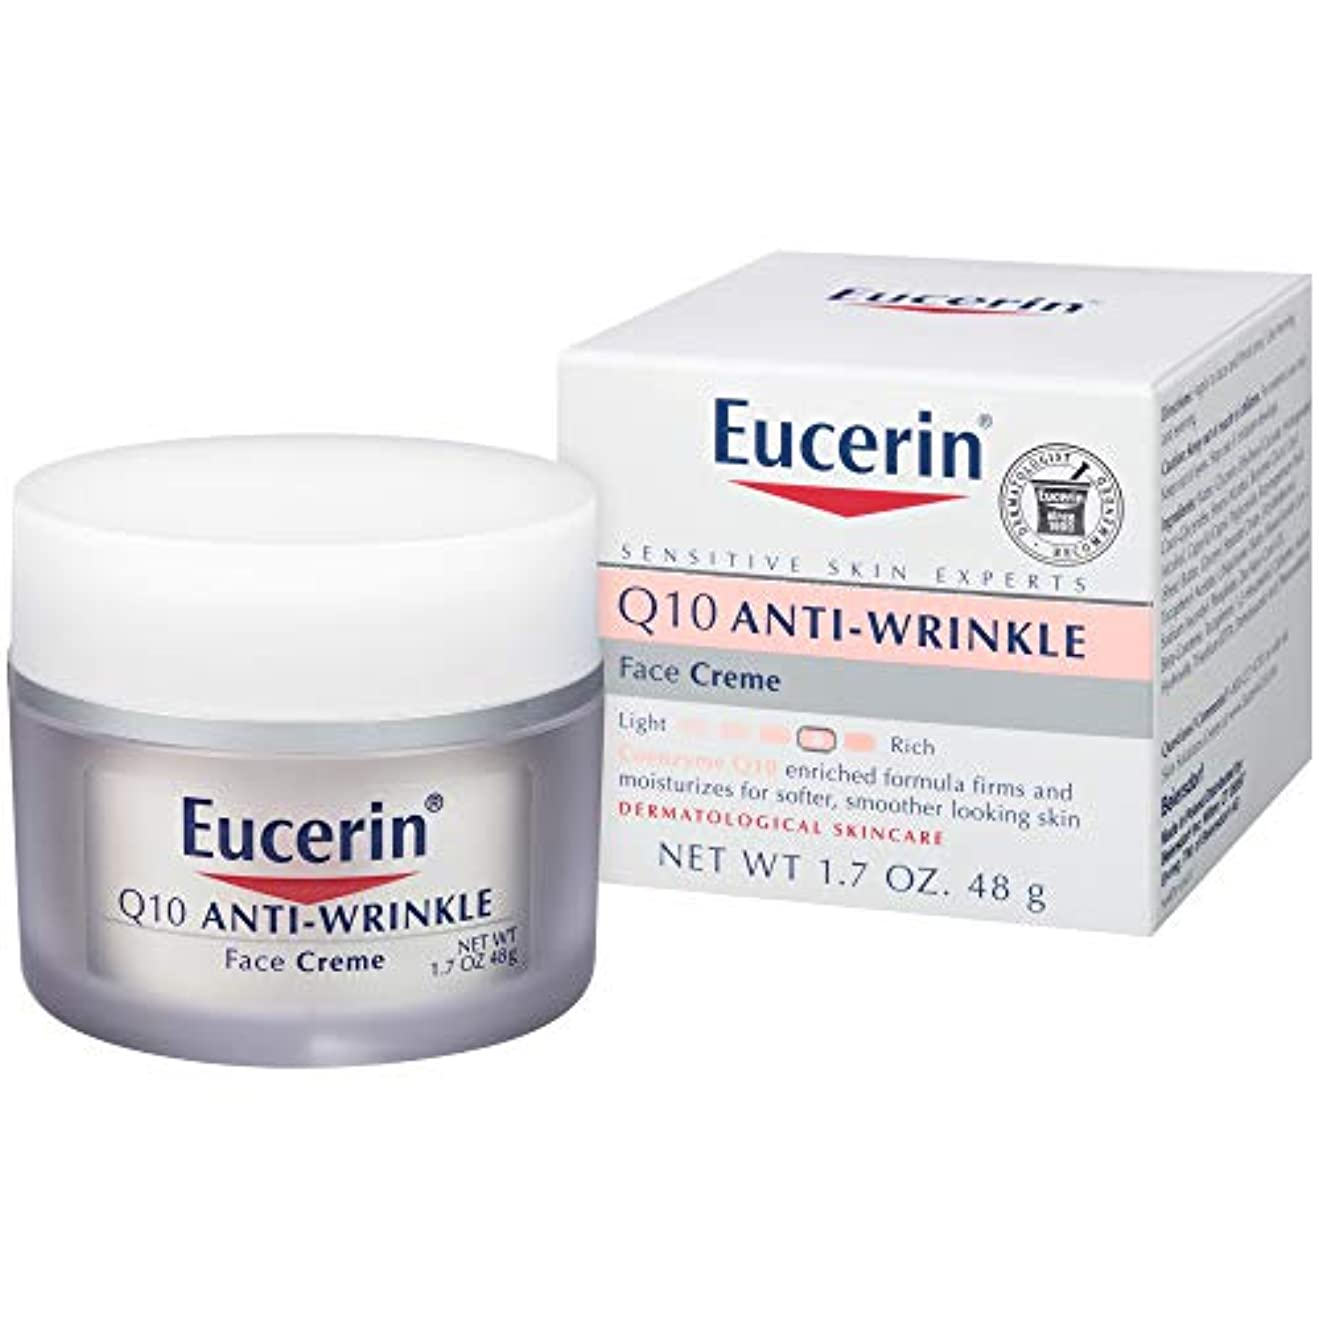 オデュッセウス火薬準備ができてEucerin Sensitive Facial Skin Q10 Anti-Wrinkle Sensitive Skin Creme 48g (並行輸入品)